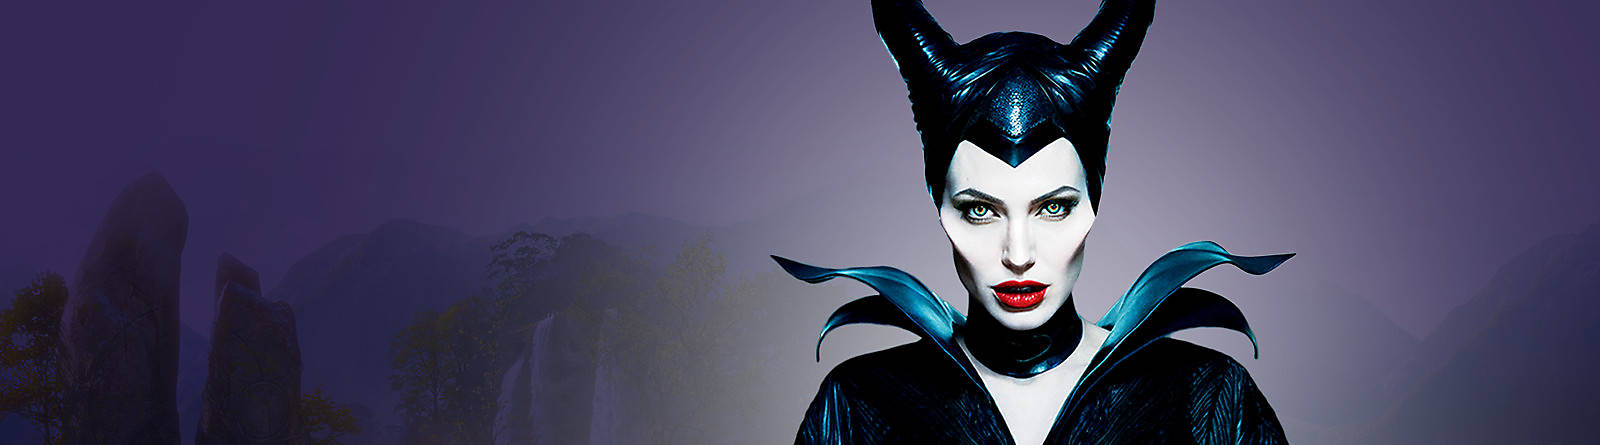 Maleficent Check out our range of Maleficent merchandise including collectibles, figurines and more